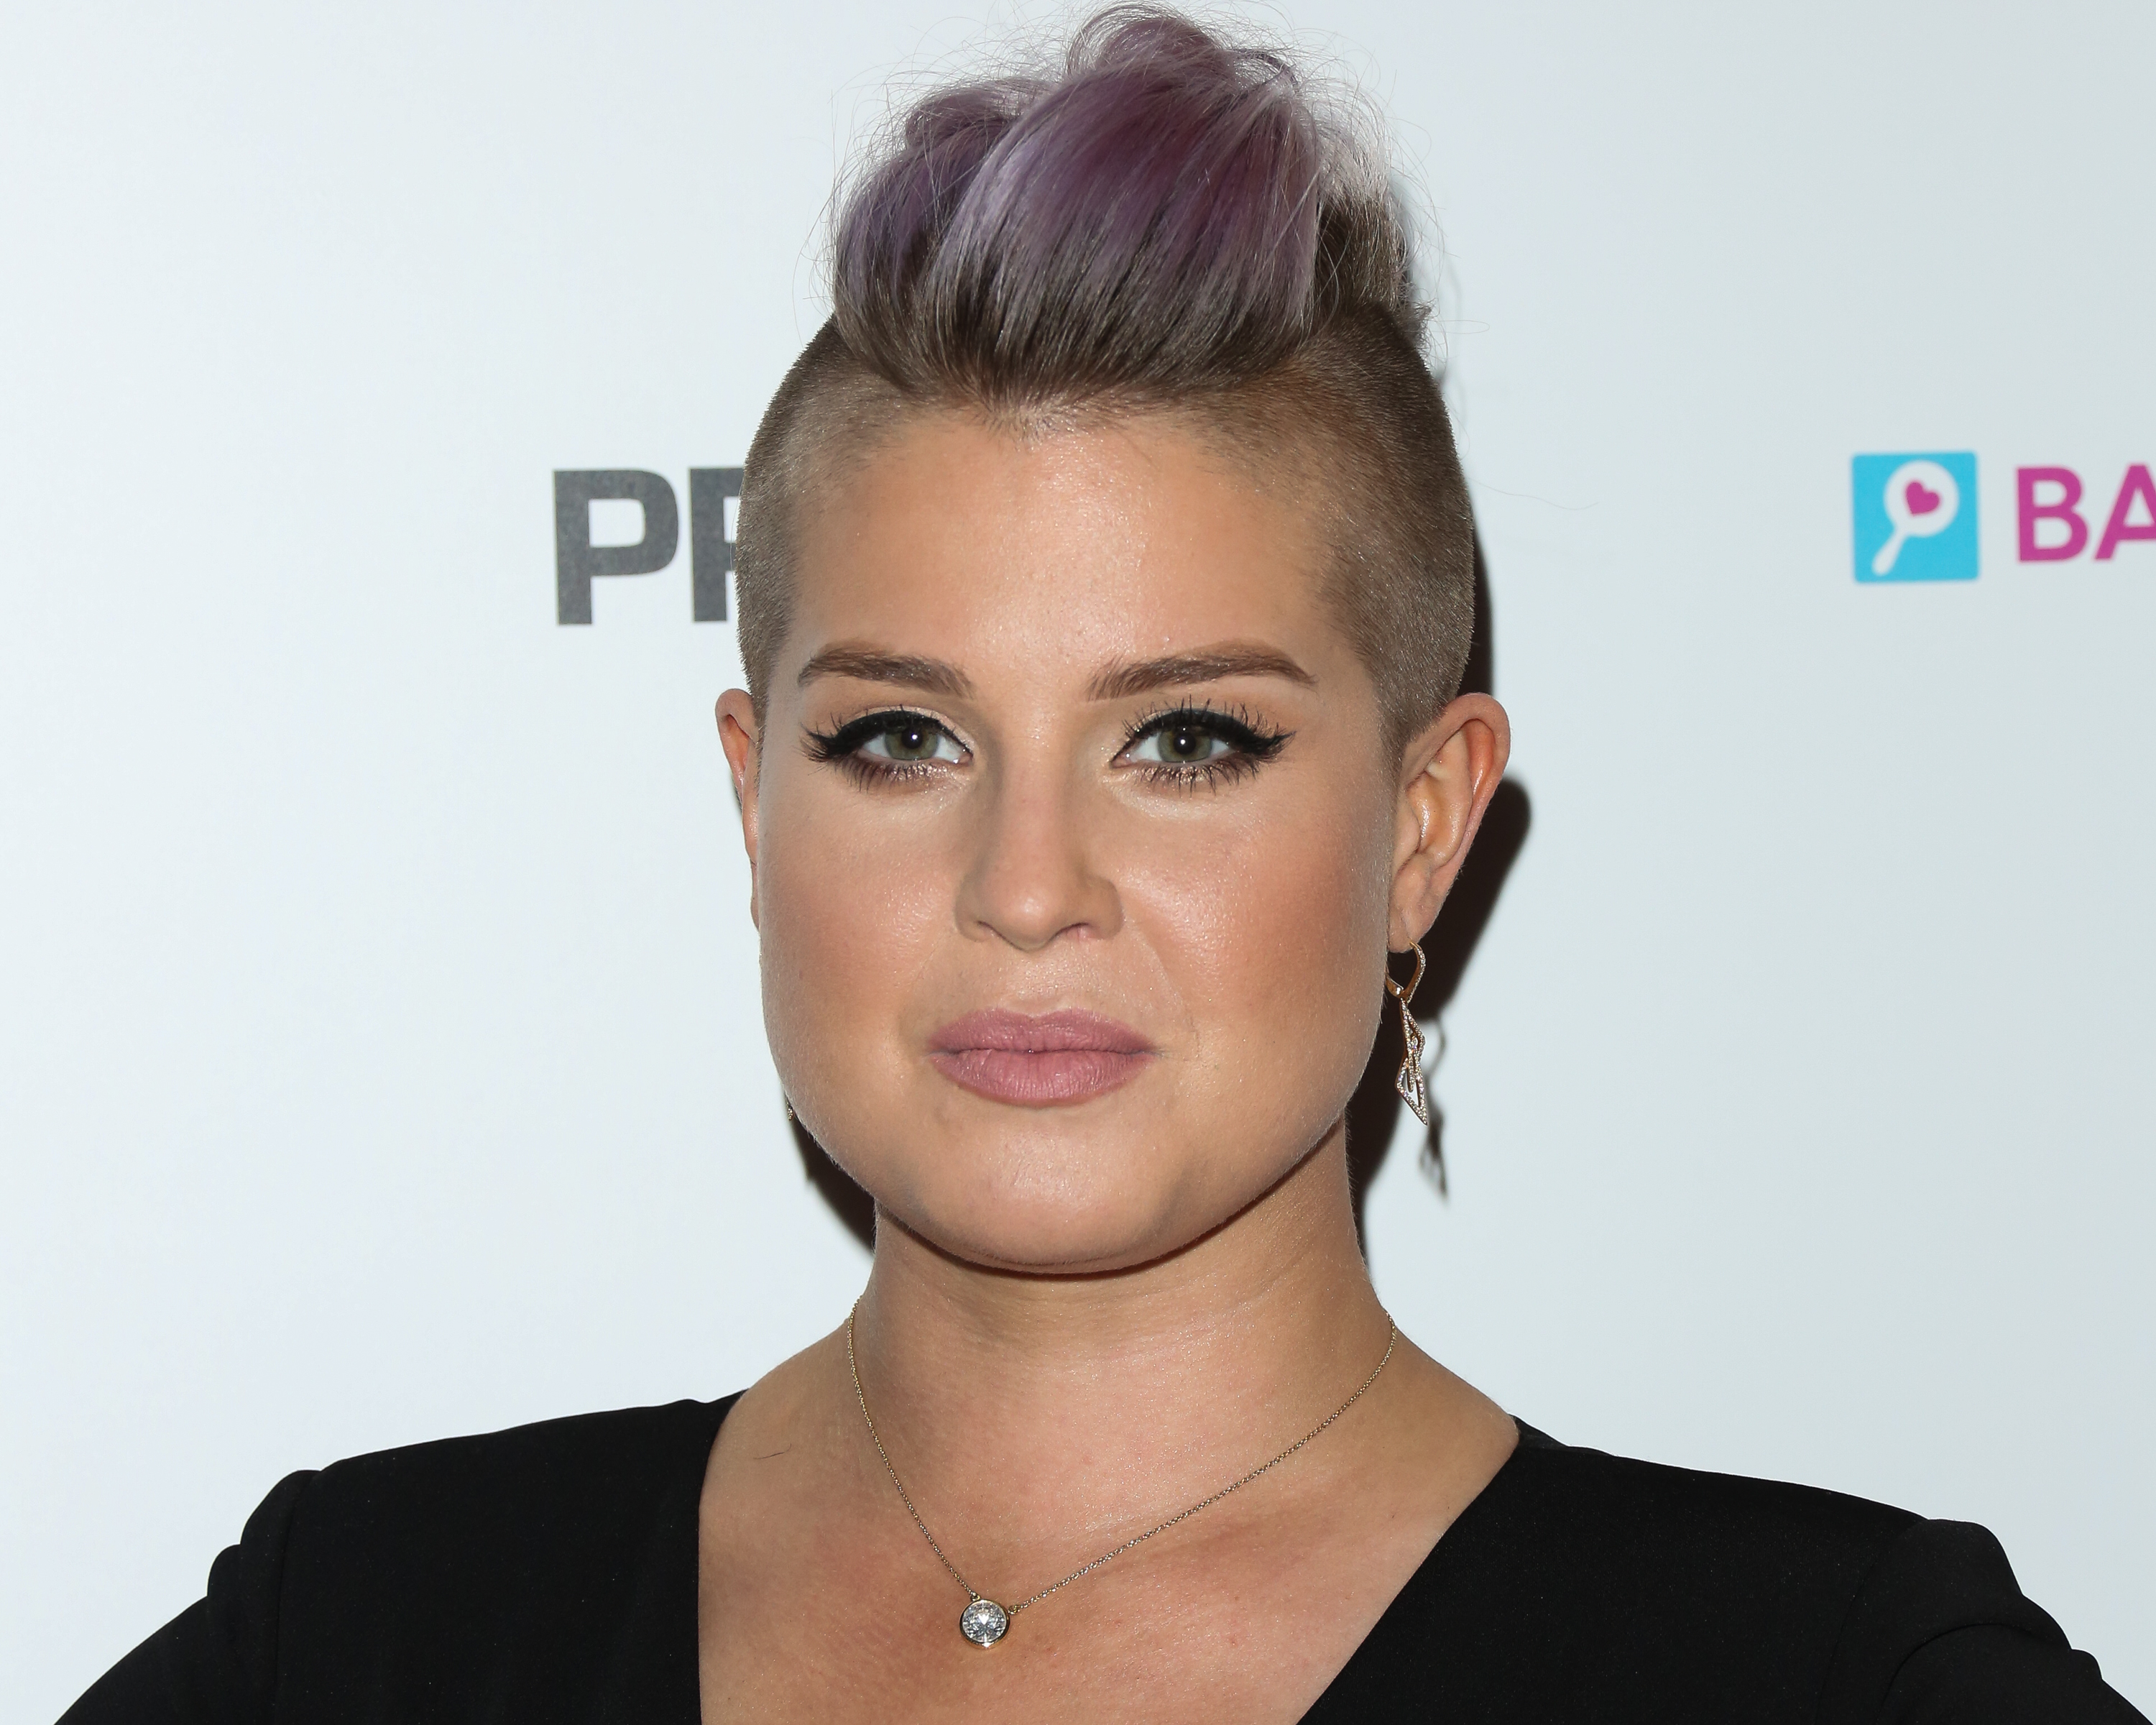 TV Personality Kelly Osbourne attends  The Babes For Boobs  charity event benefitting the Los Angeles county affiliate of the Susan G. Komen foundation on June 16, 2016 in Los Angeles.